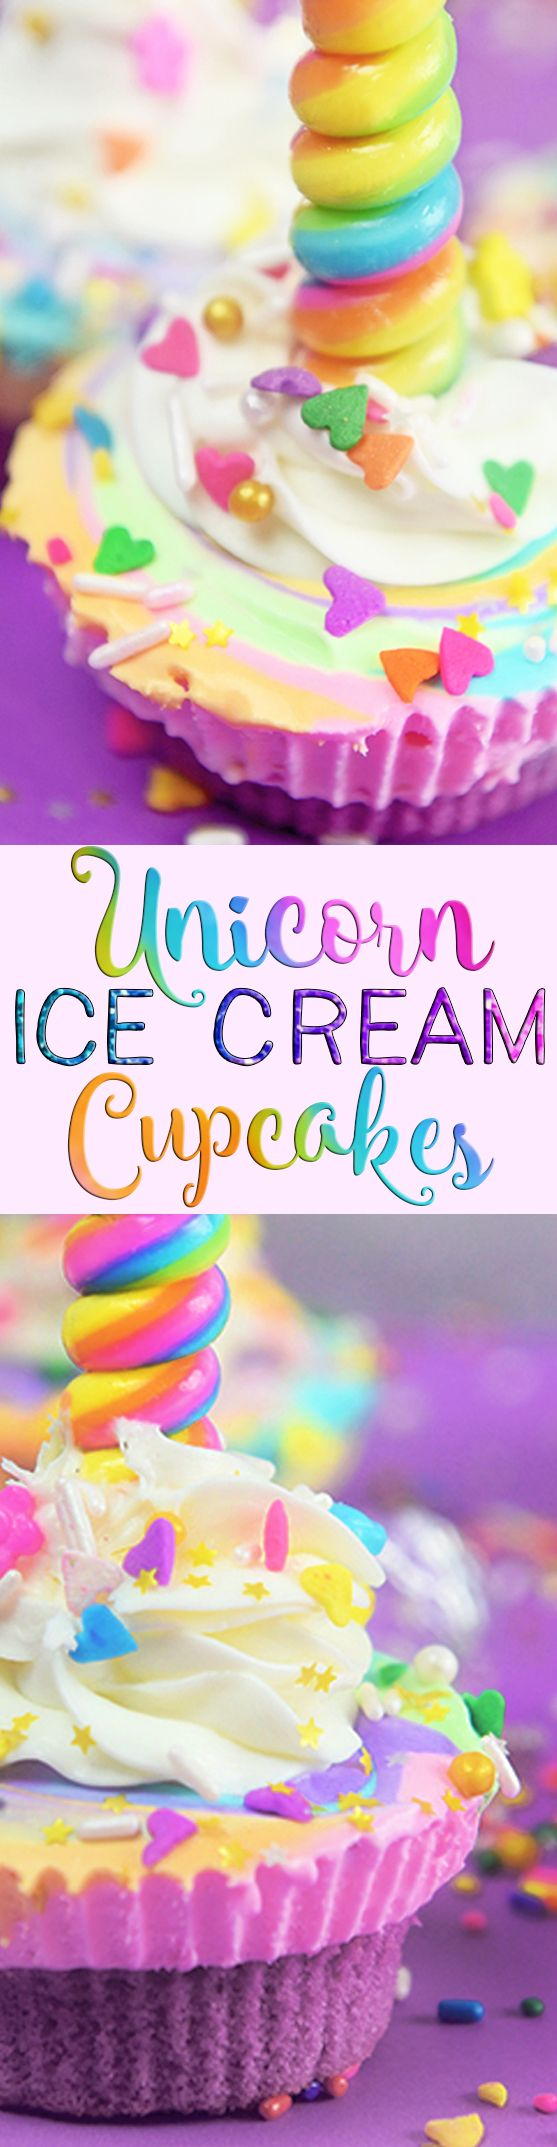 Unicorn Ice Cream Cupcakes are real and they are as magical as they sound!  Perfect for a unicorn themed party or the unicorn lover! via @sprinklesomefun